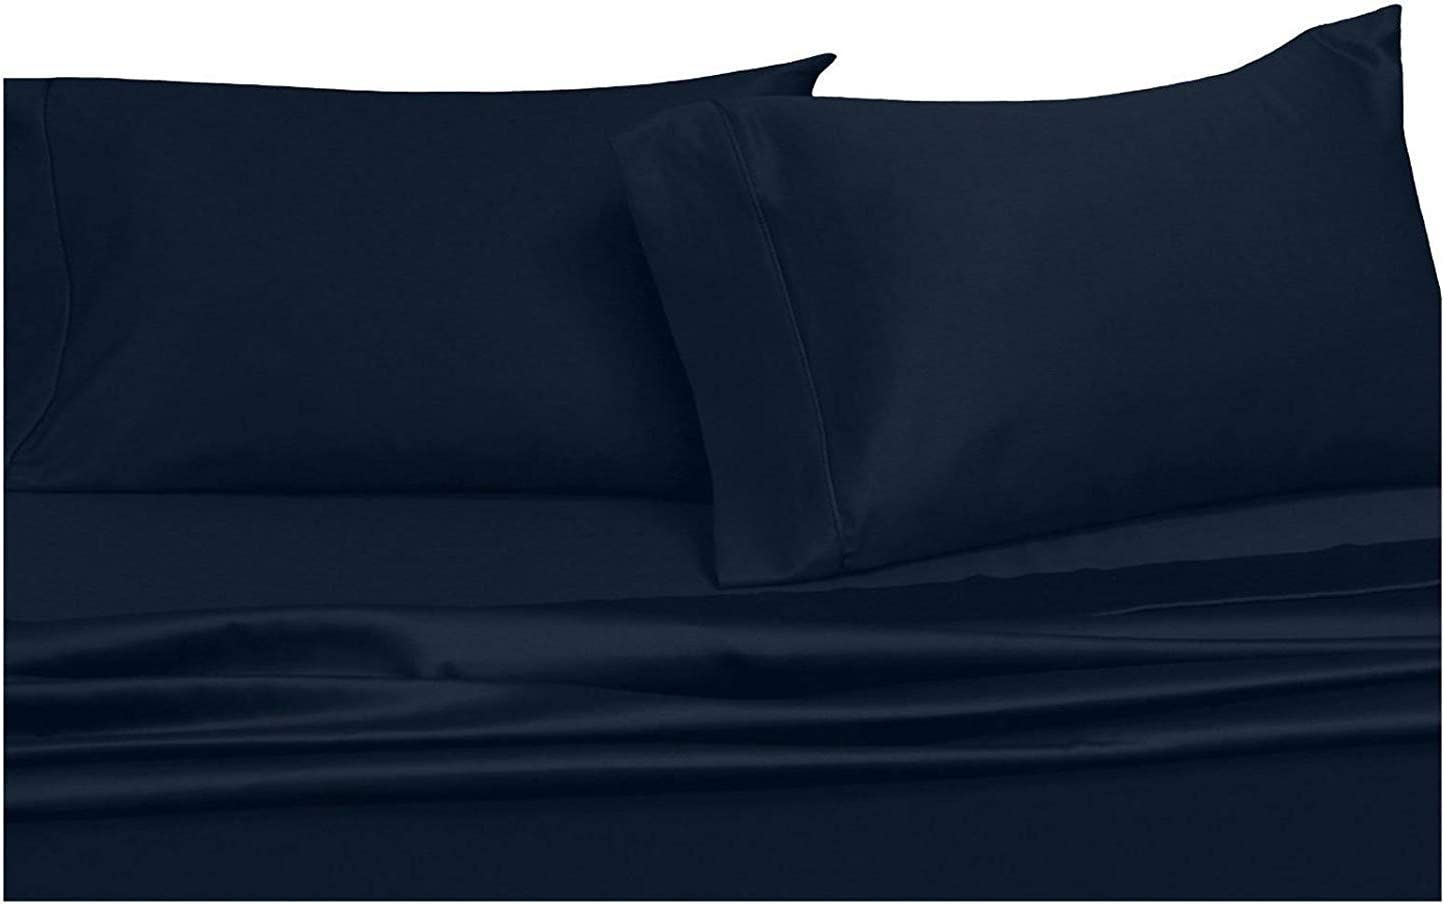 Split-King: Adjustable King Bed Sheets 5PC Solid Navy 100% Cotton 600-Thread-Count, Deep Pocket